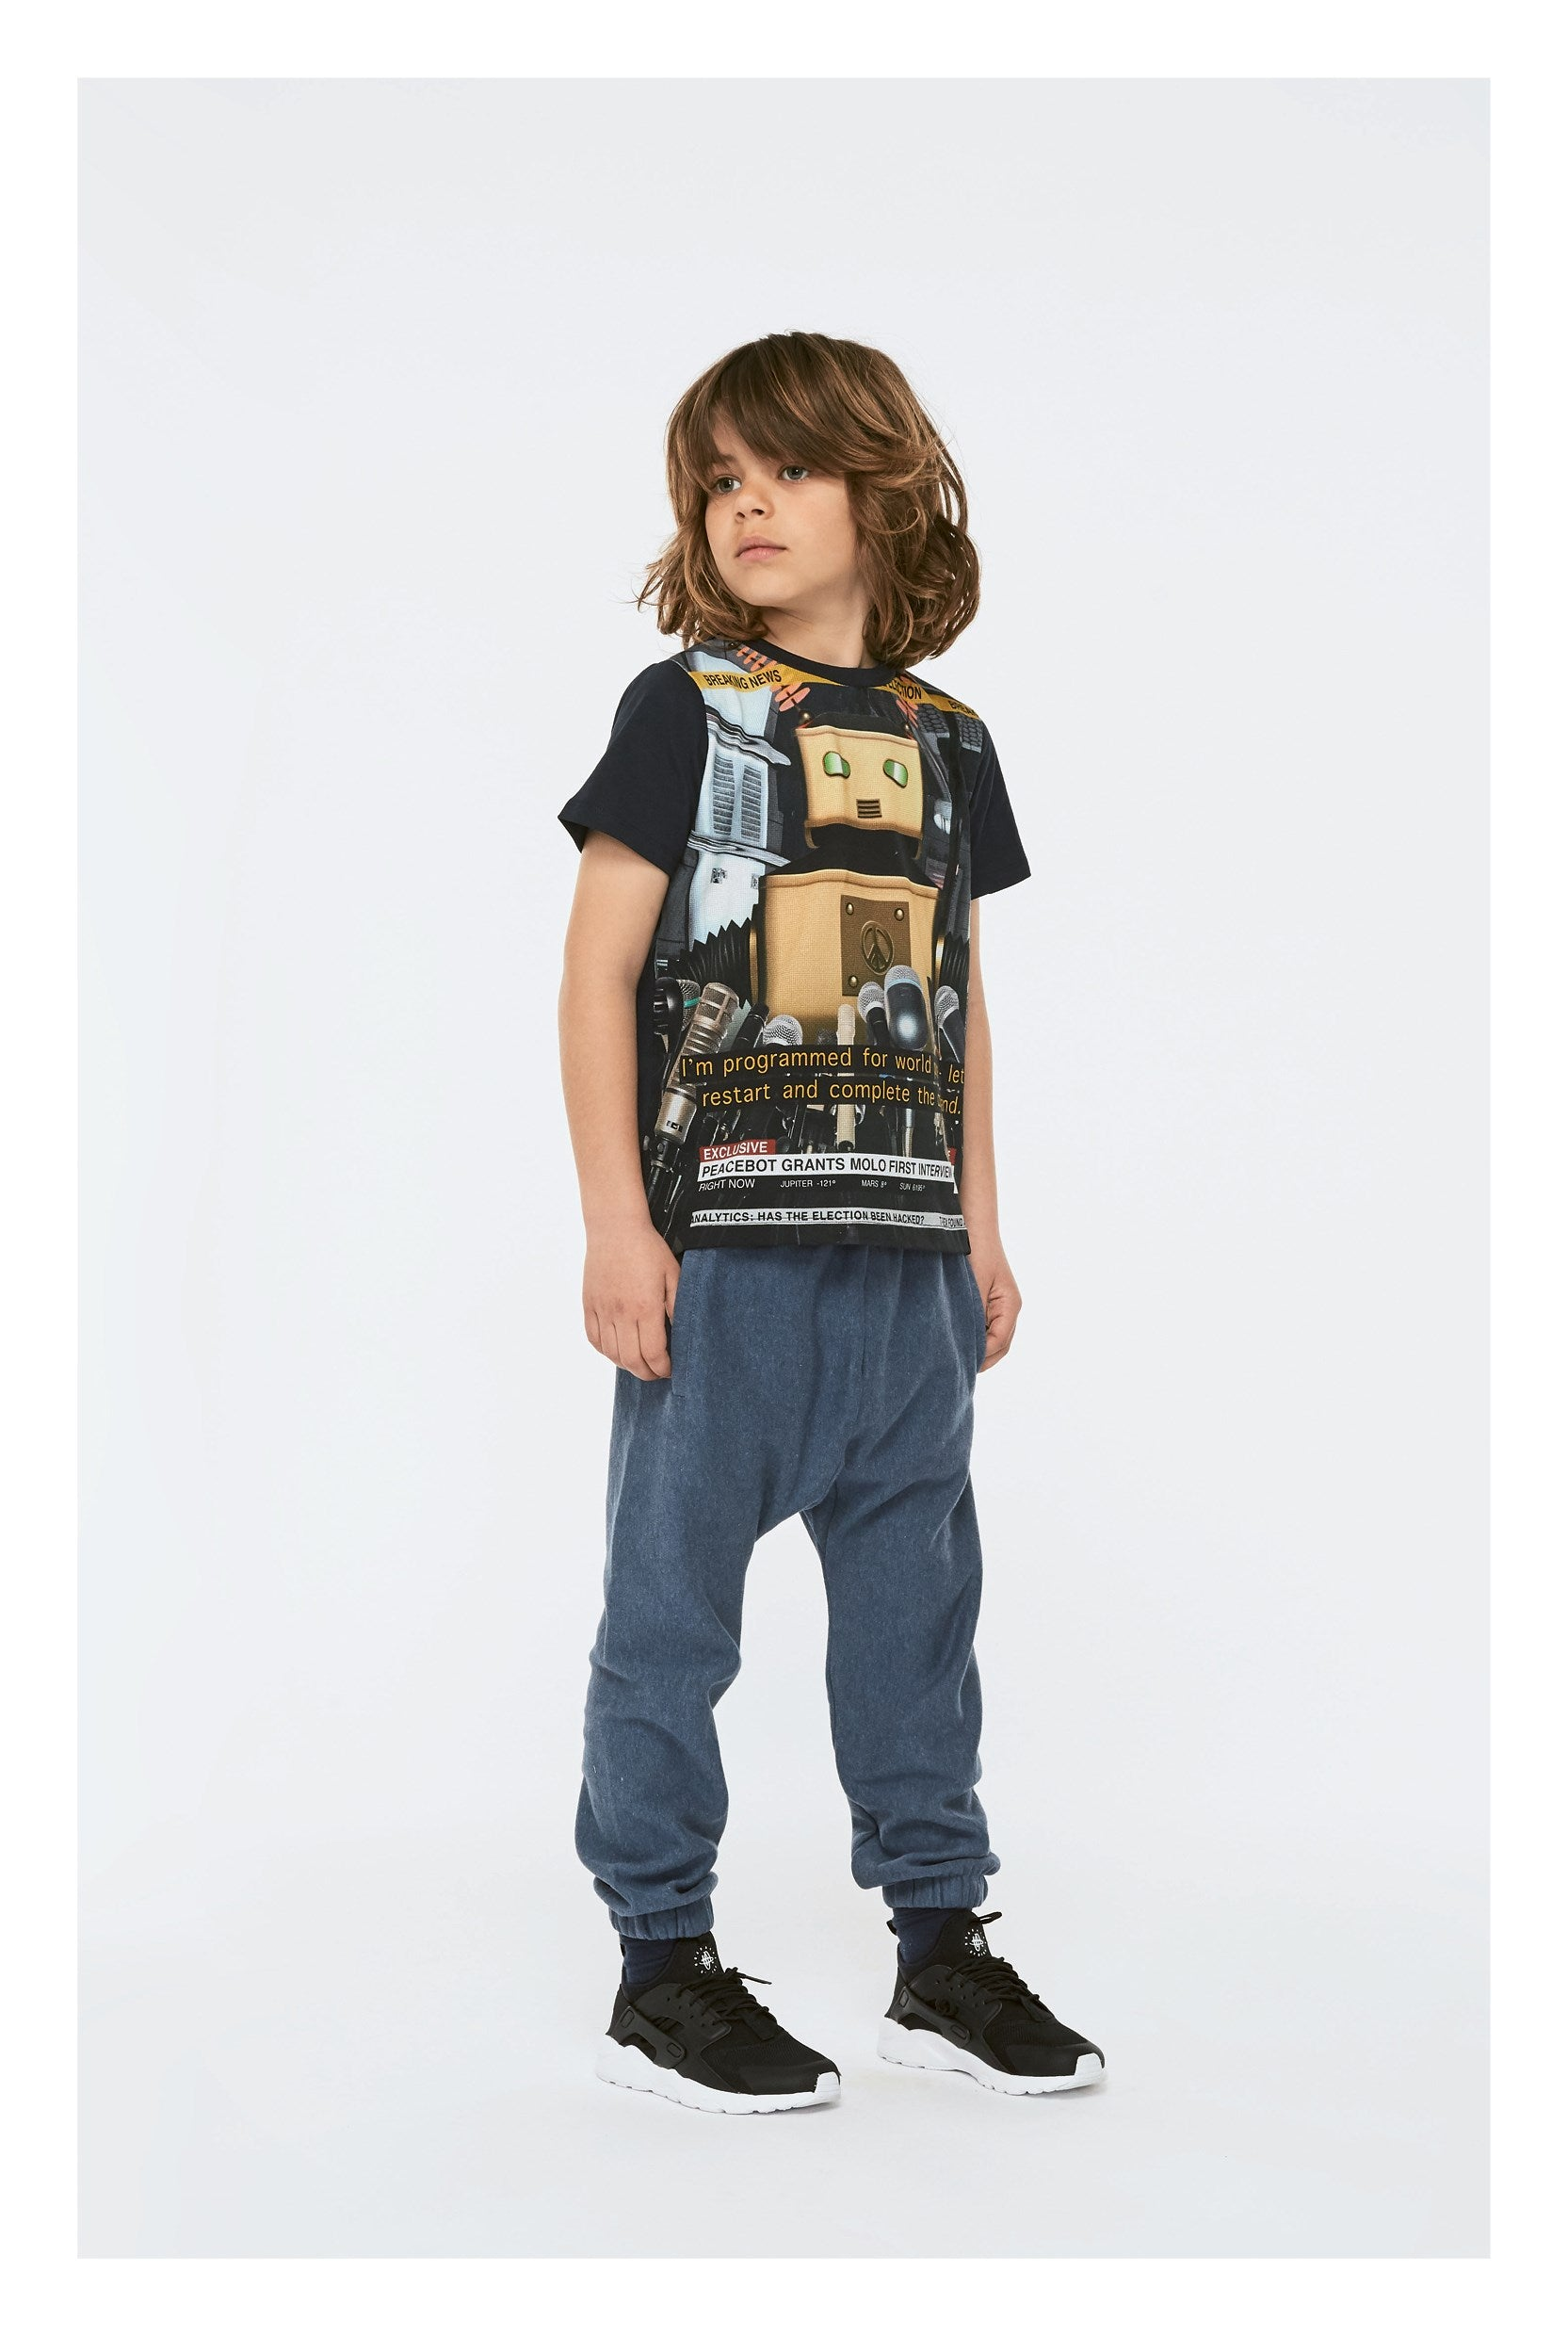 Designer Kids Fashion at Bloom Moda Online Children's Boutique - Molo Raddix Shirt,  Shirt